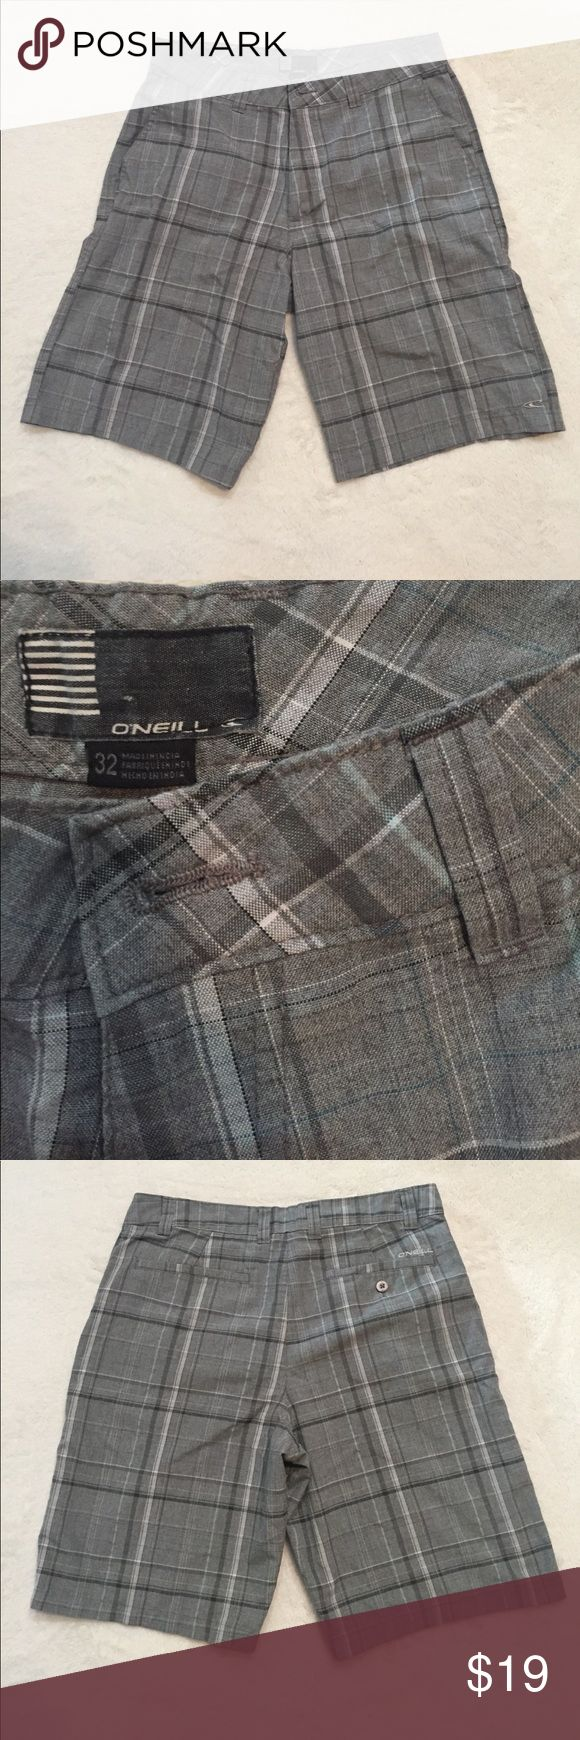 O'Neill Plaid Shorts Grey and light blue men's plaid O'Neill shorts O'Neill Shorts